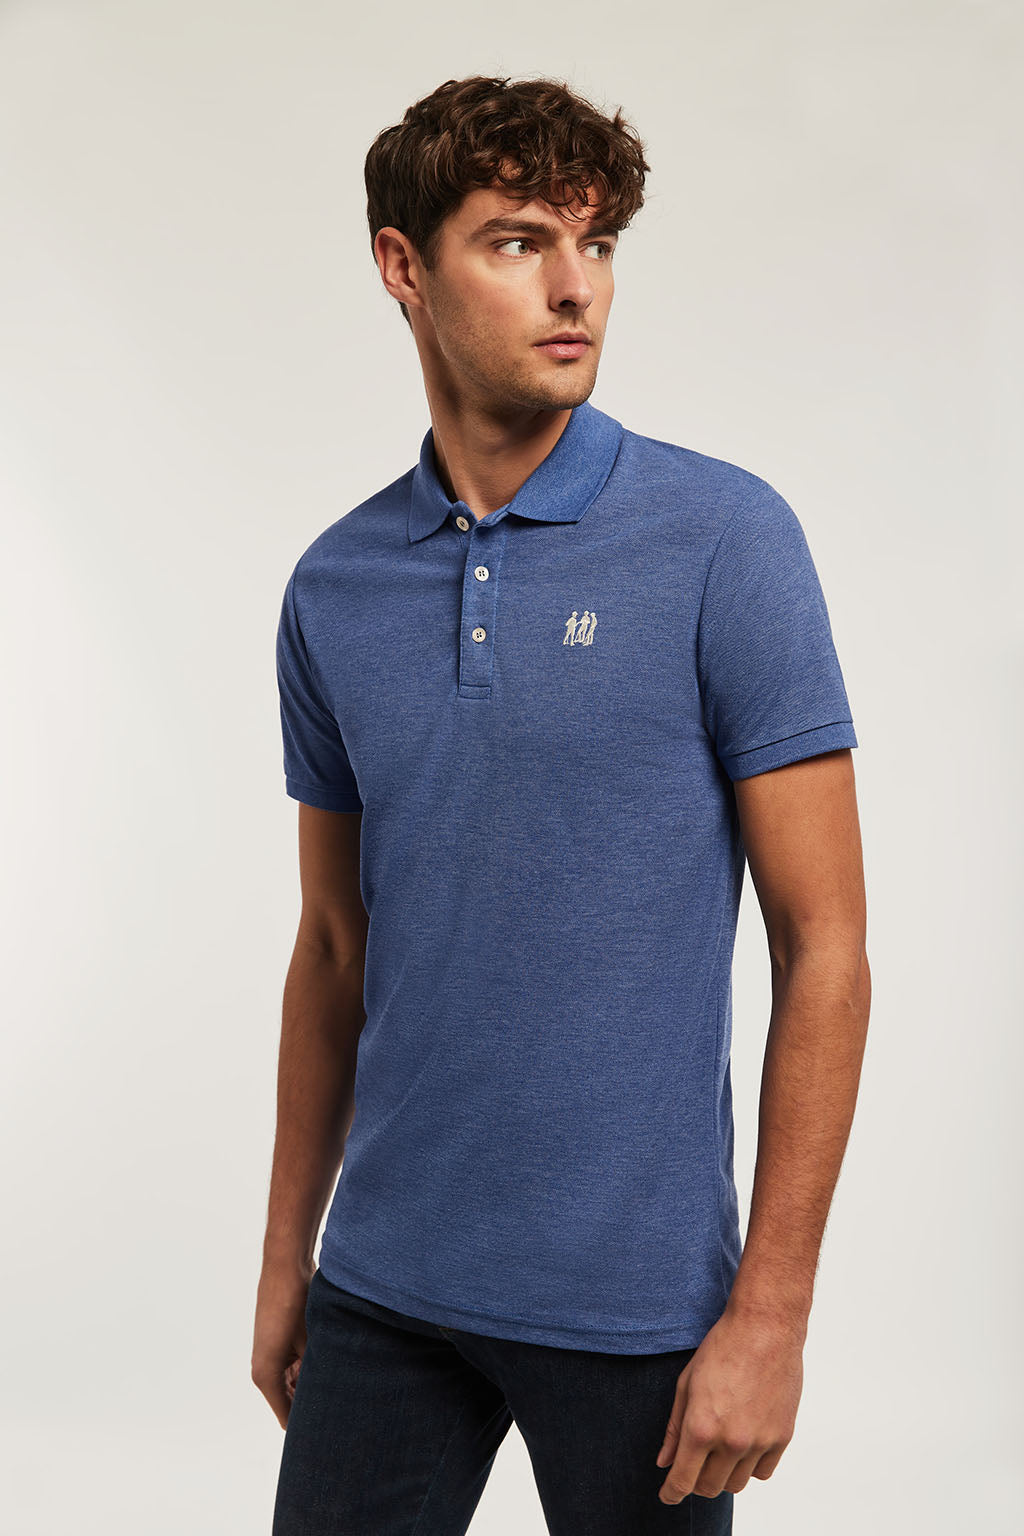 Poloshirt blau mit Stickerei in beige